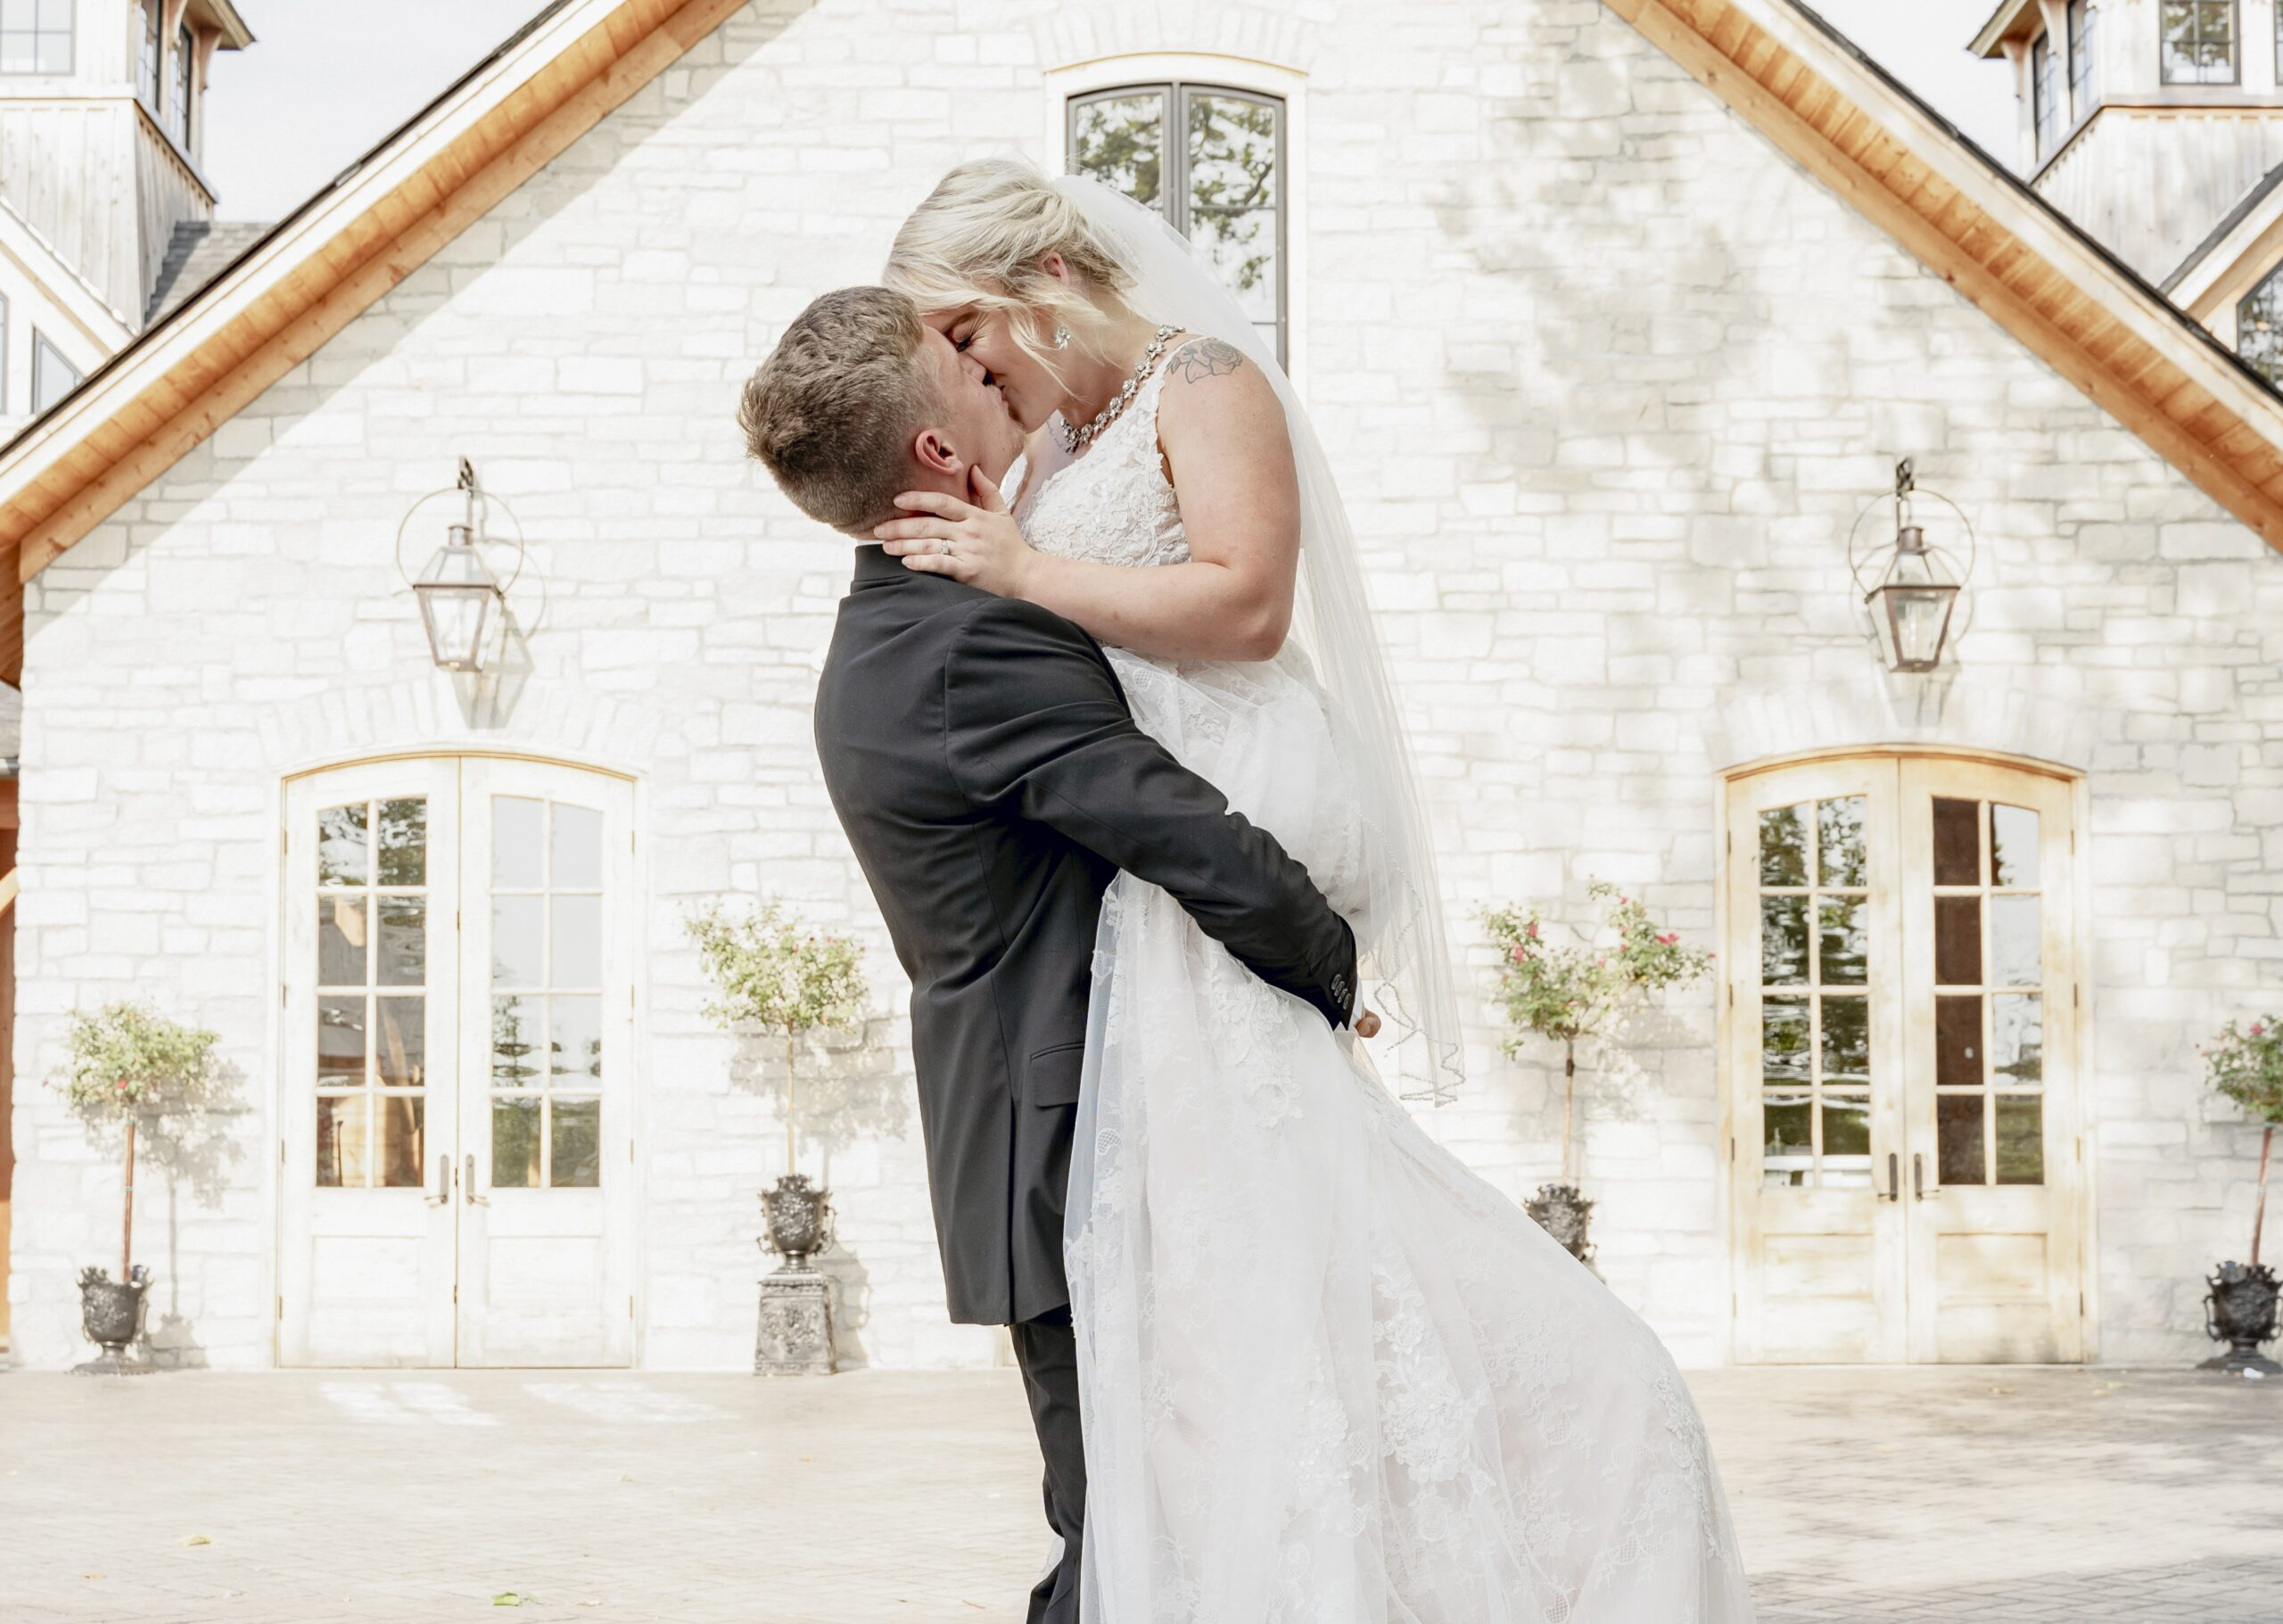 wedding insurance - bride and groom kiss in front of church